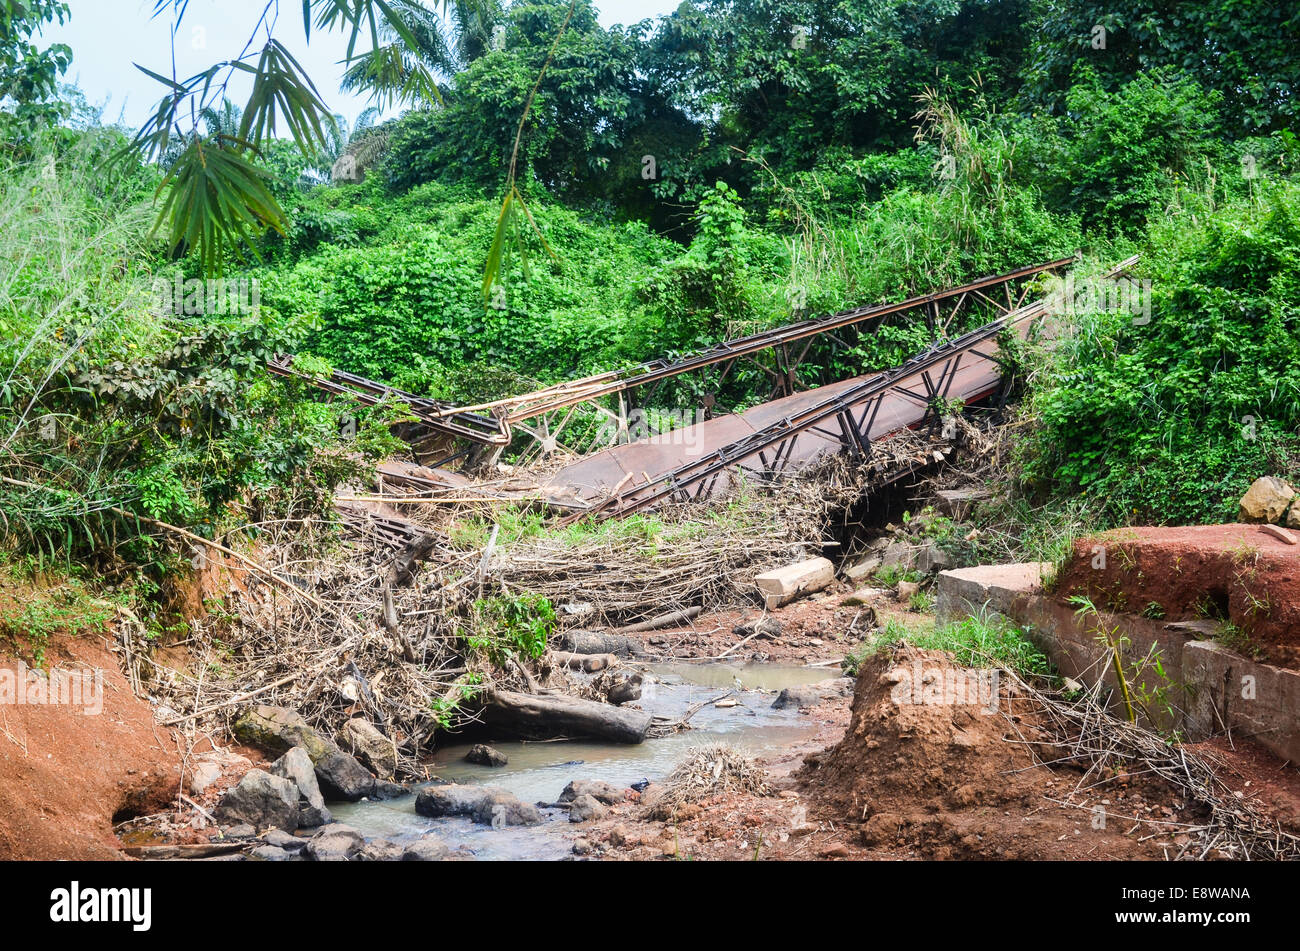 Poor infrastructure in Nigeria, dirt roads, floods and broken bridges - Stock Image